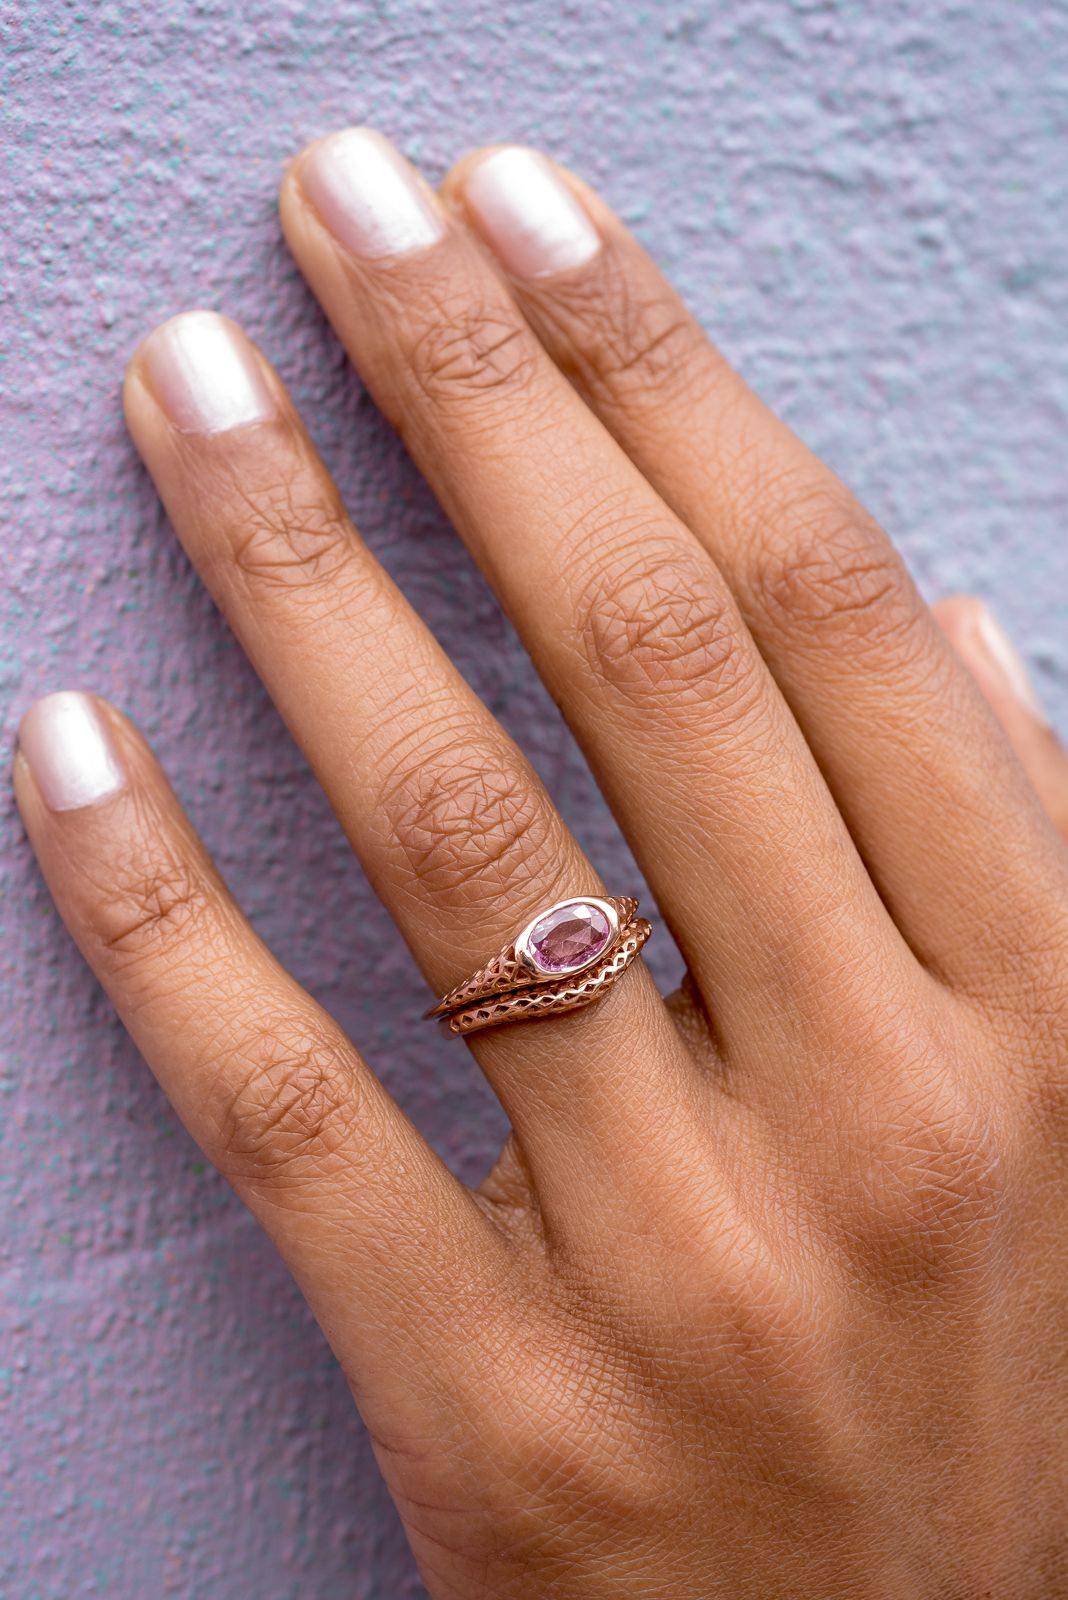 Pin On Ethical Wedding Engagement Rings Reclaimed Fairmined Traceable Custom